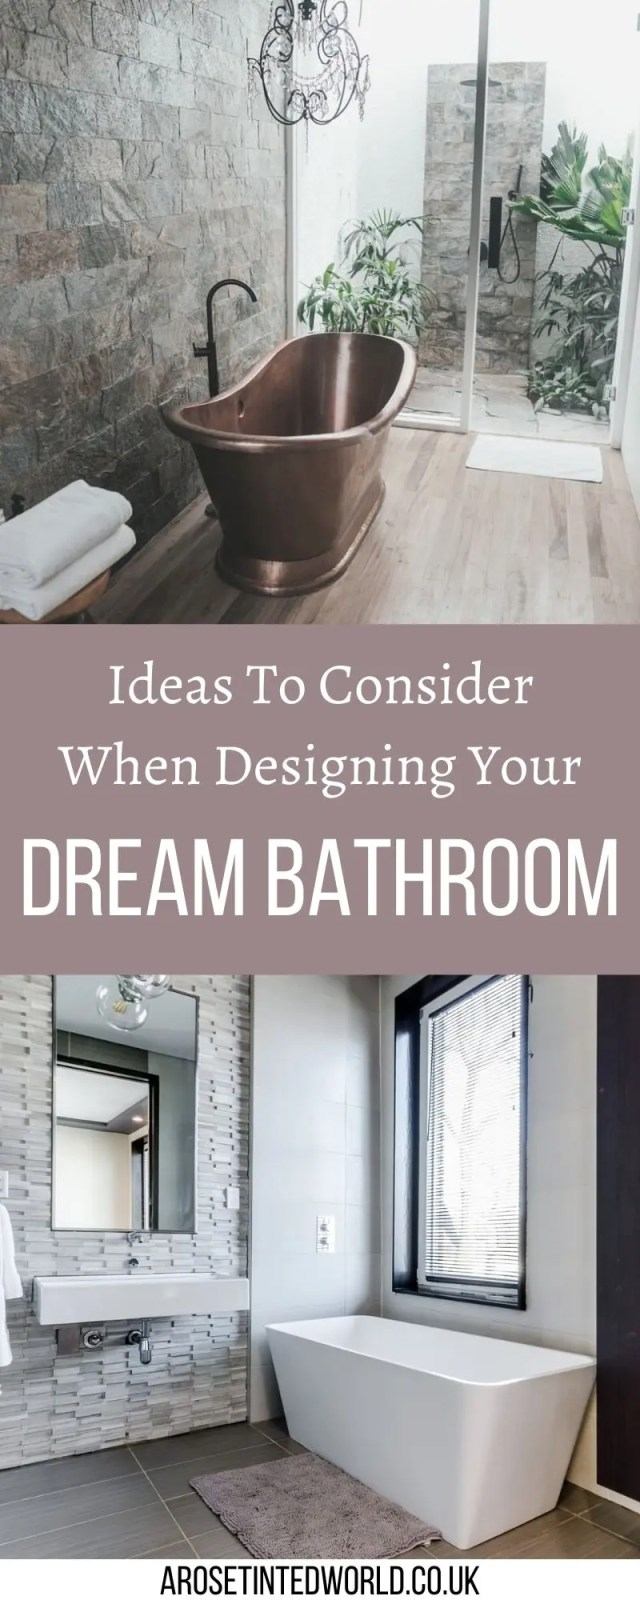 Things to Consider When Getting A New Bathroom - choosing how to remodel or renovate a bathroom can be a large decision fraught with pitfalls. Here are some good ideas for how to design and plan your dream bathroom space. #bathroom #bathroomdesign #bathroomideas #bathroomremodel #bathroomdecor #bathroomcabinets #bathroomorganization #bathroomrenovation #bathroomrenovationideas #bathroominspiration